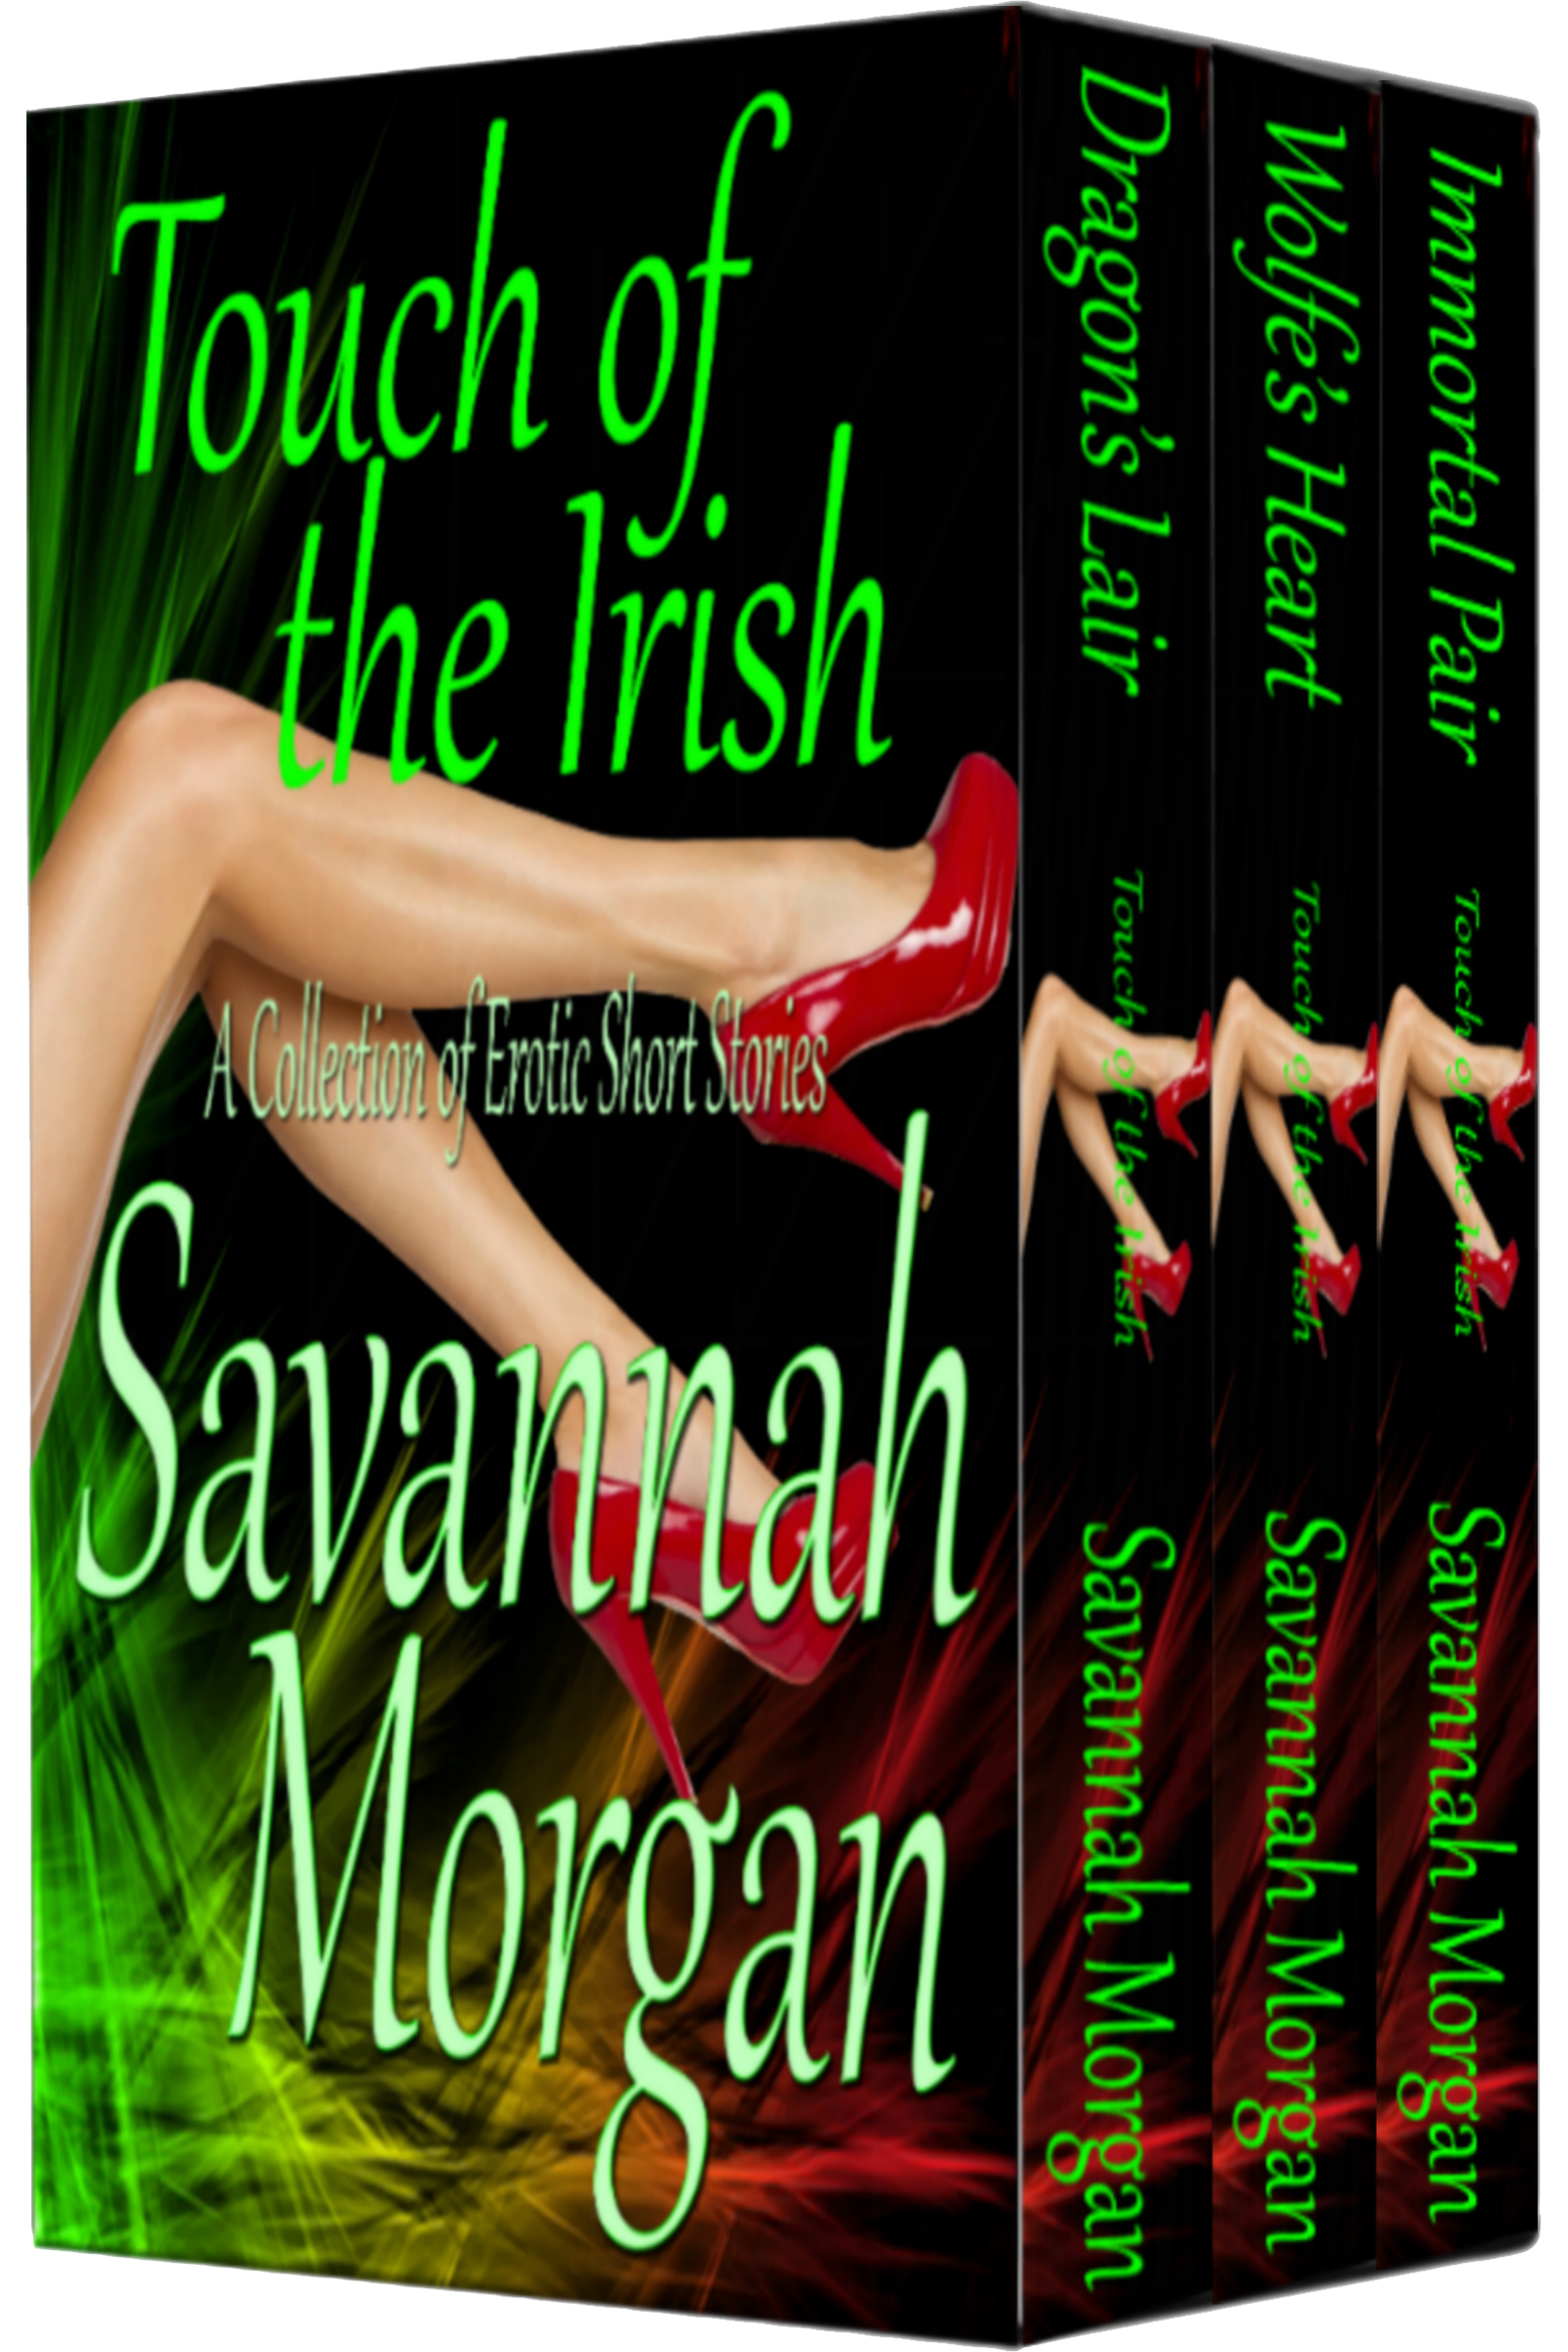 Touch of the Irish: Touch of the Irish Collection Savannah Morgan